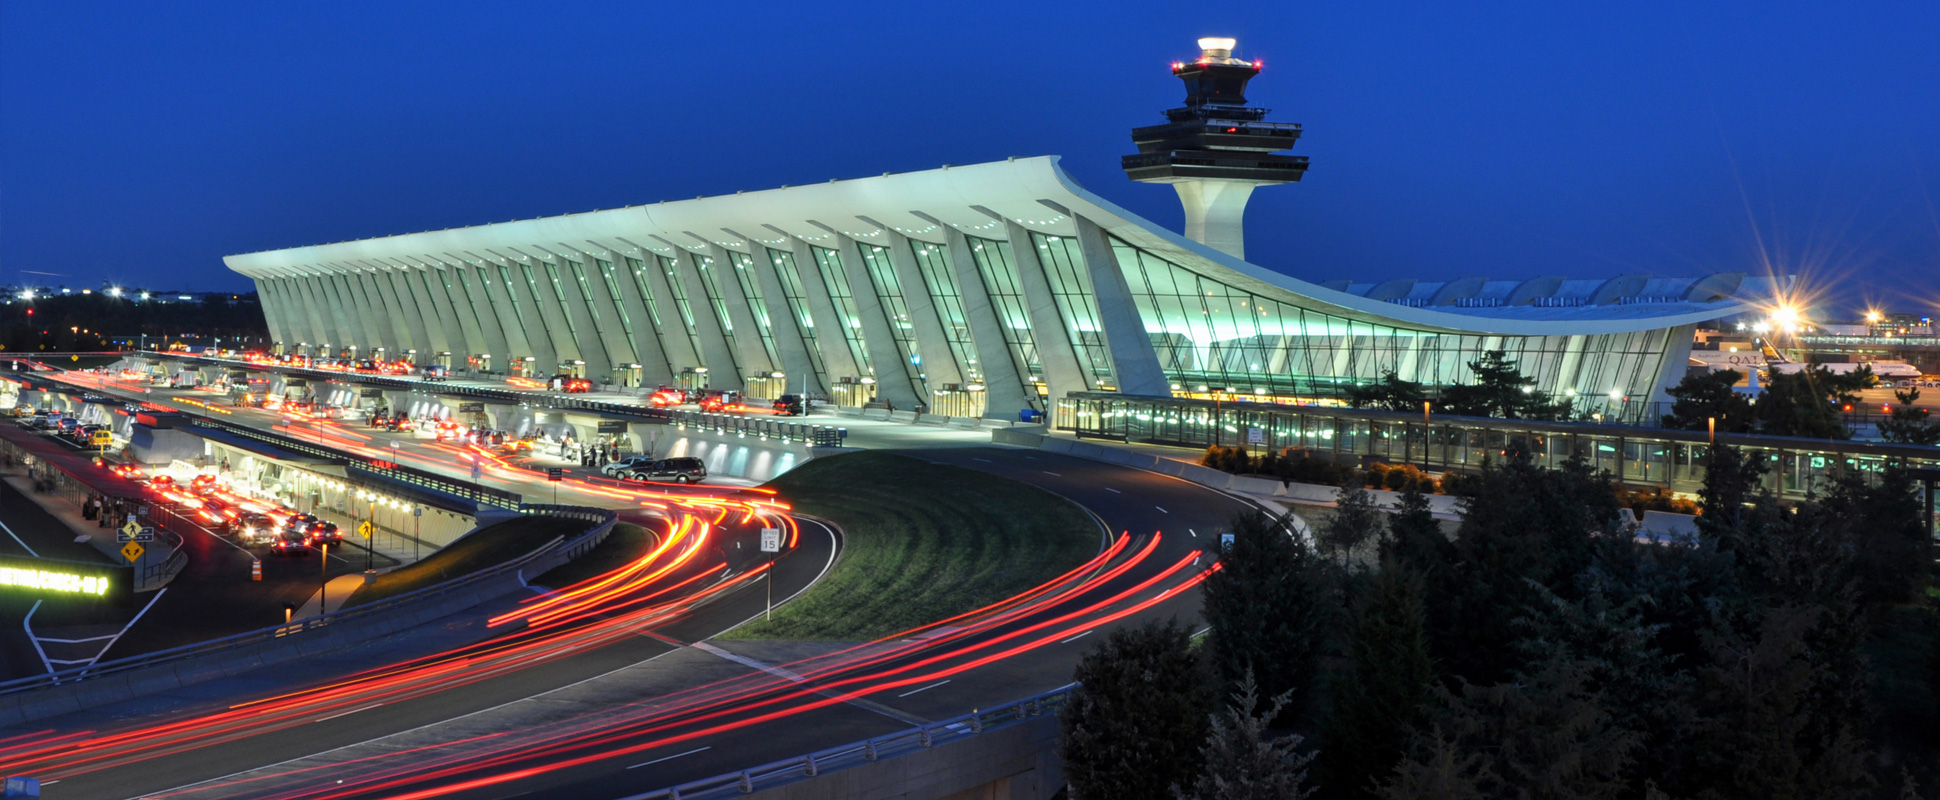 Washington Dulles Airport Dusk